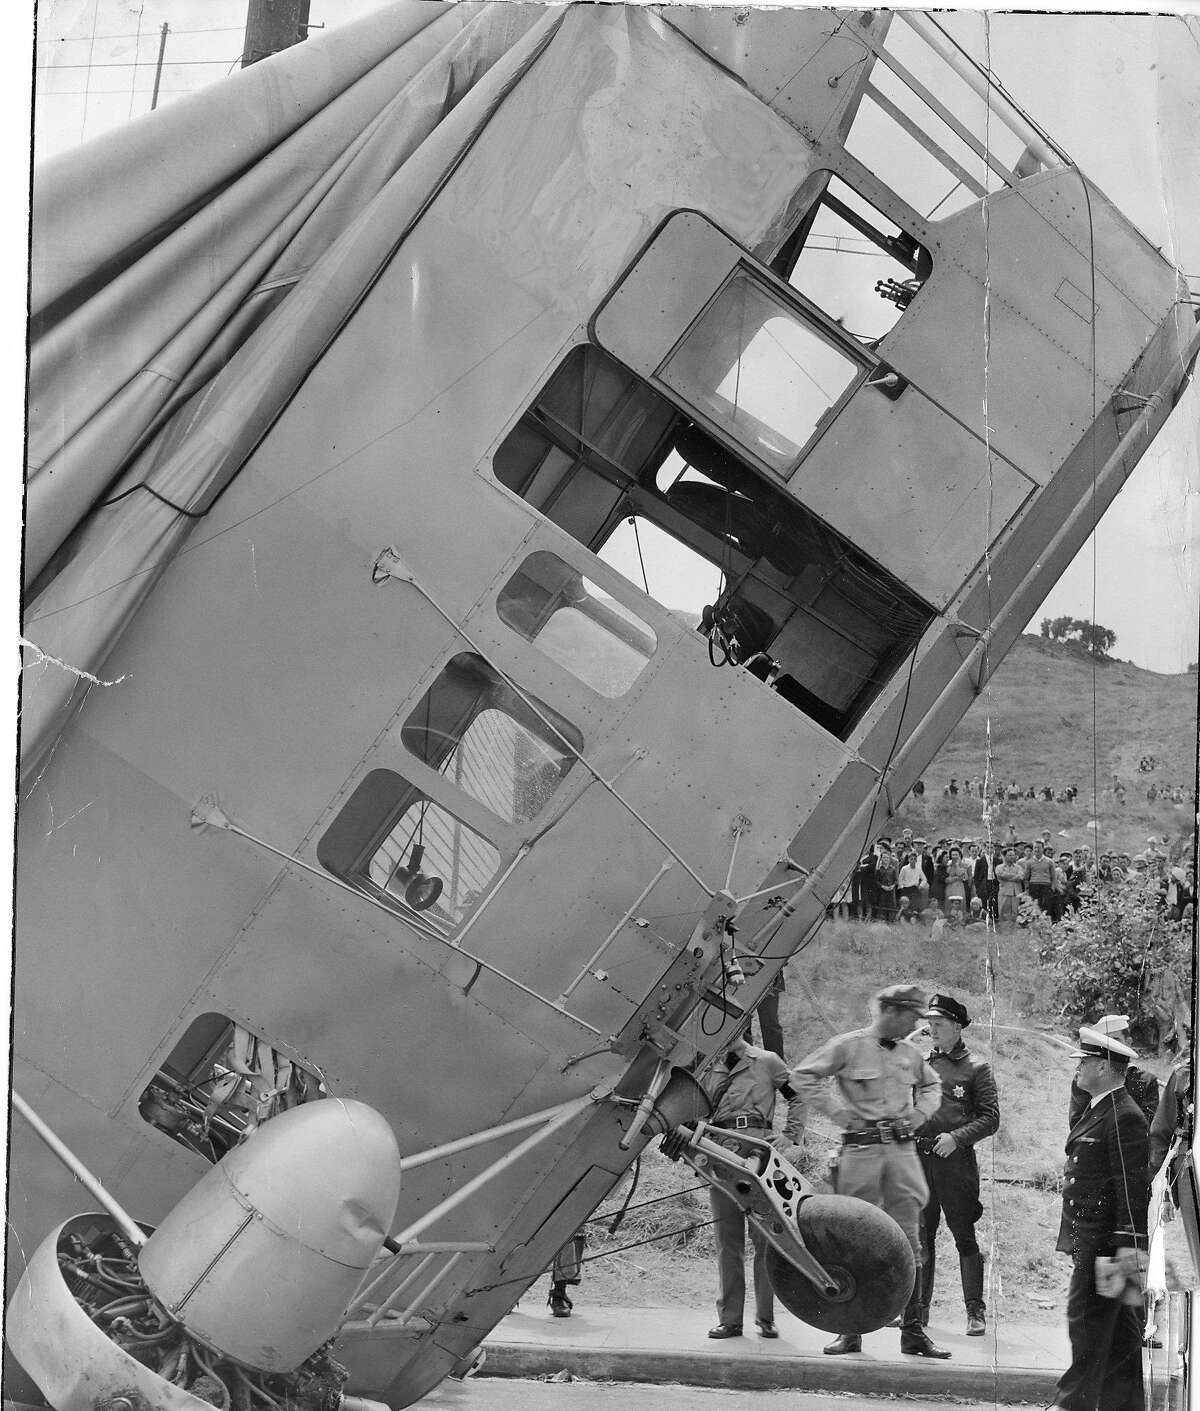 The gondola leans against a telephone pole as a crewless out of control Navy Patrol Blimp landed in a street in Daly City, August 16, 1942 U.S. Nay photo Photo ran 08/17/1942, P. 3